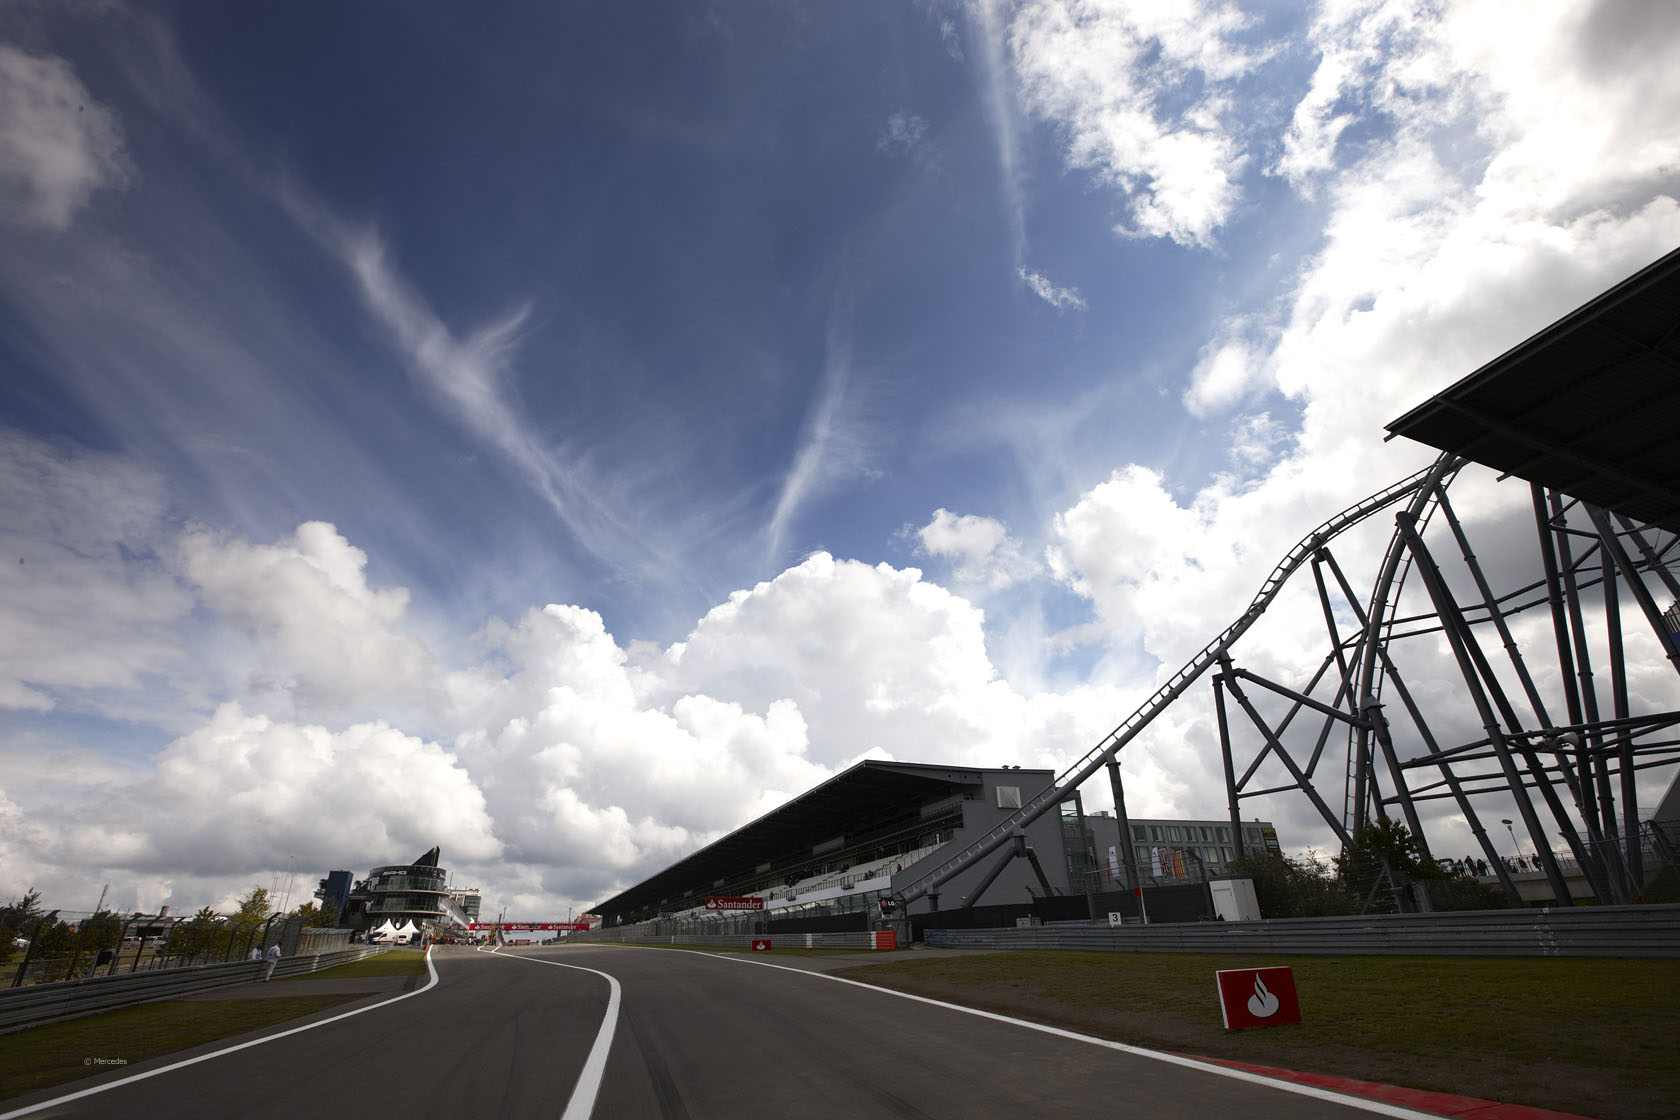 1 3 Racing Tracks To Set Your Own Speed Record!